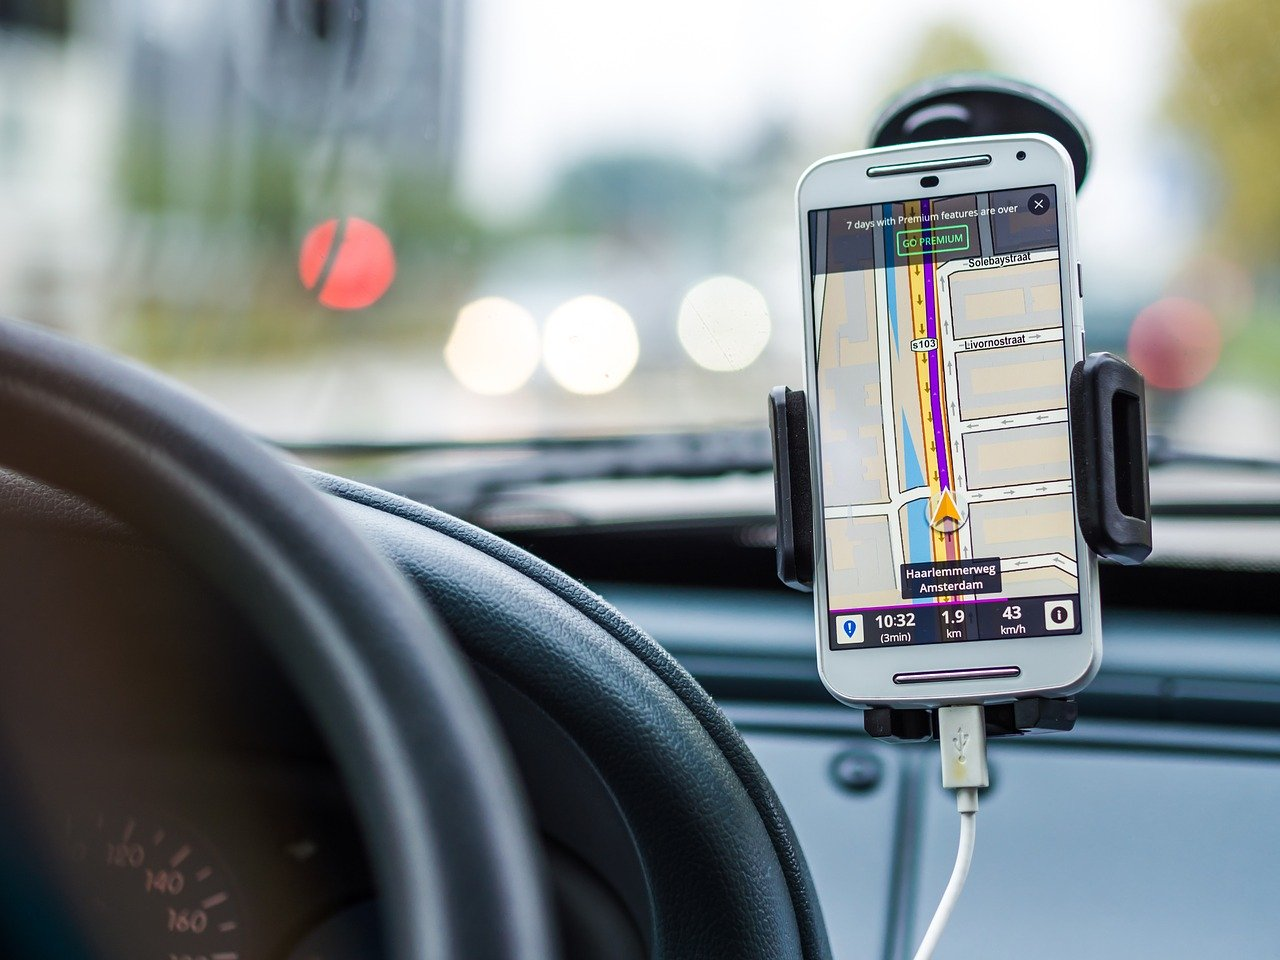 Connected vehicles are increasingly targeted by cybercriminals